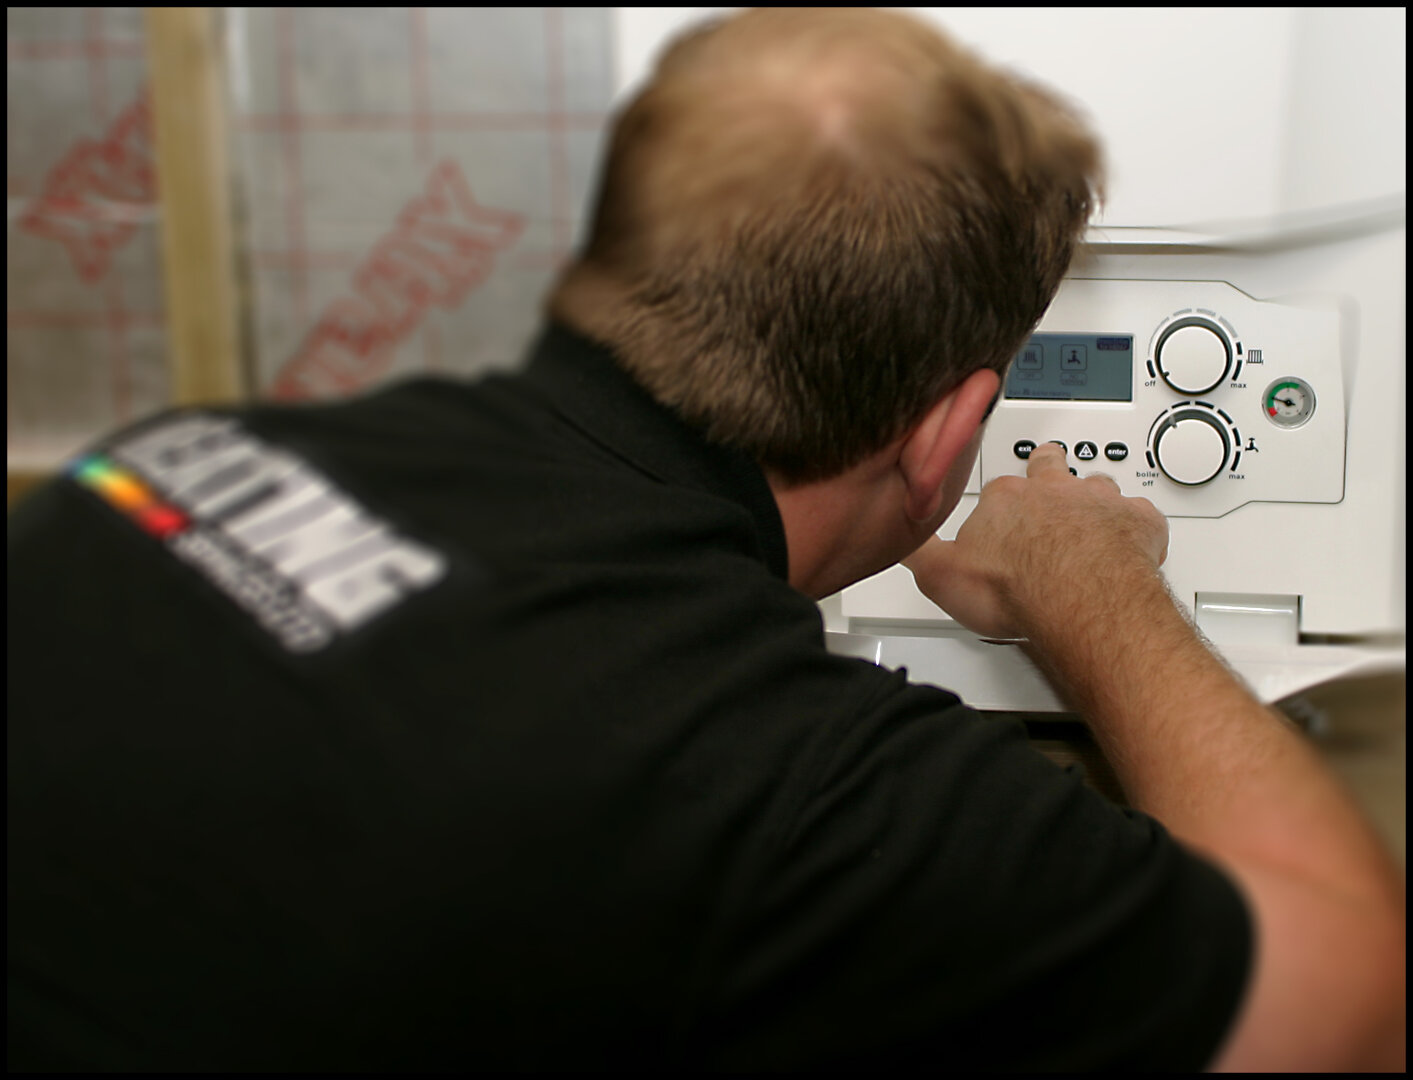 Plumbers Boiler Installation Service and Repairs and Bathroom Design and Installation by Heating Services Ltd in West Wickham (5)